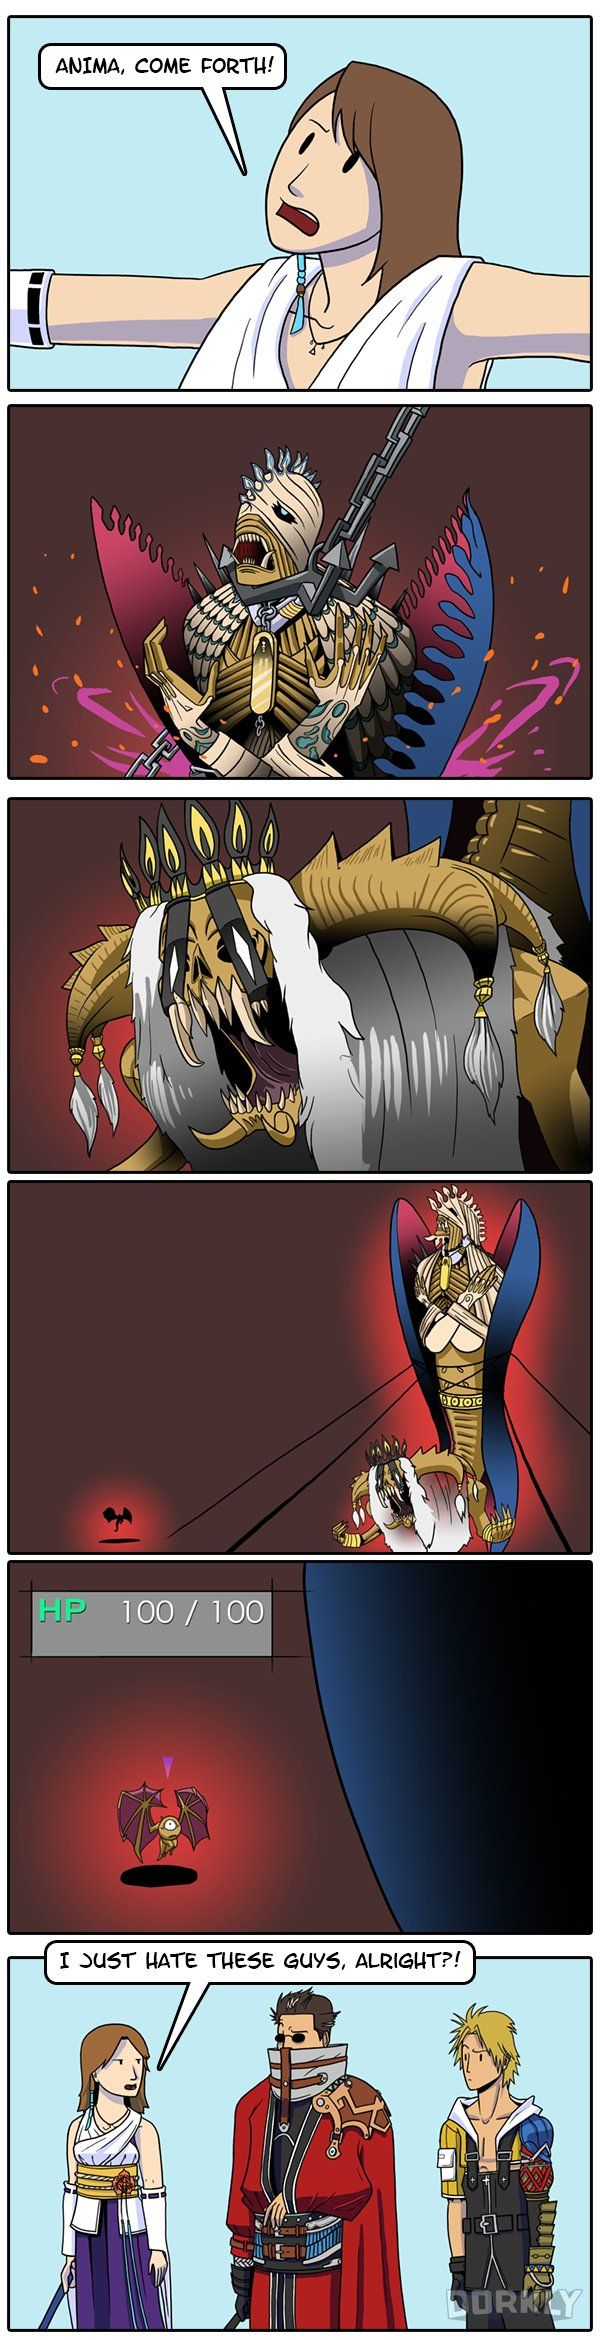 """""""Just a Reminder of How We'll All Probably Use Summons in the New Final Fantasy"""" #dorkly #geek #finalfantasy"""